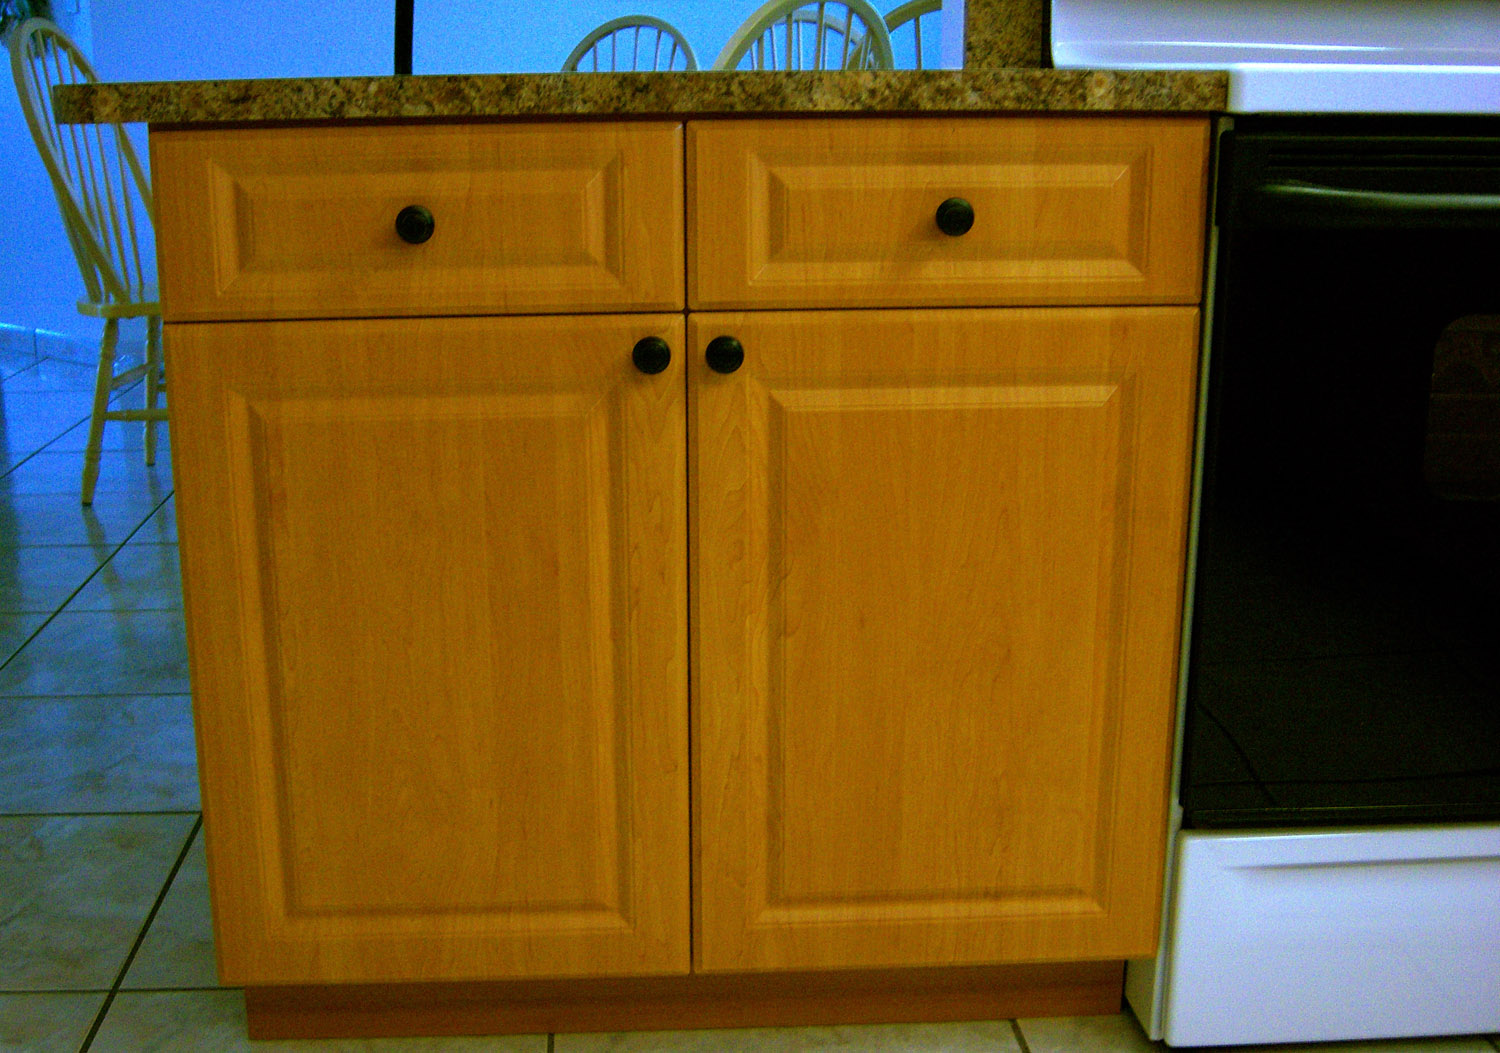 Built In Cabinets Desks Kitchen Cabinets Laundry Room Outdoor Cabinets